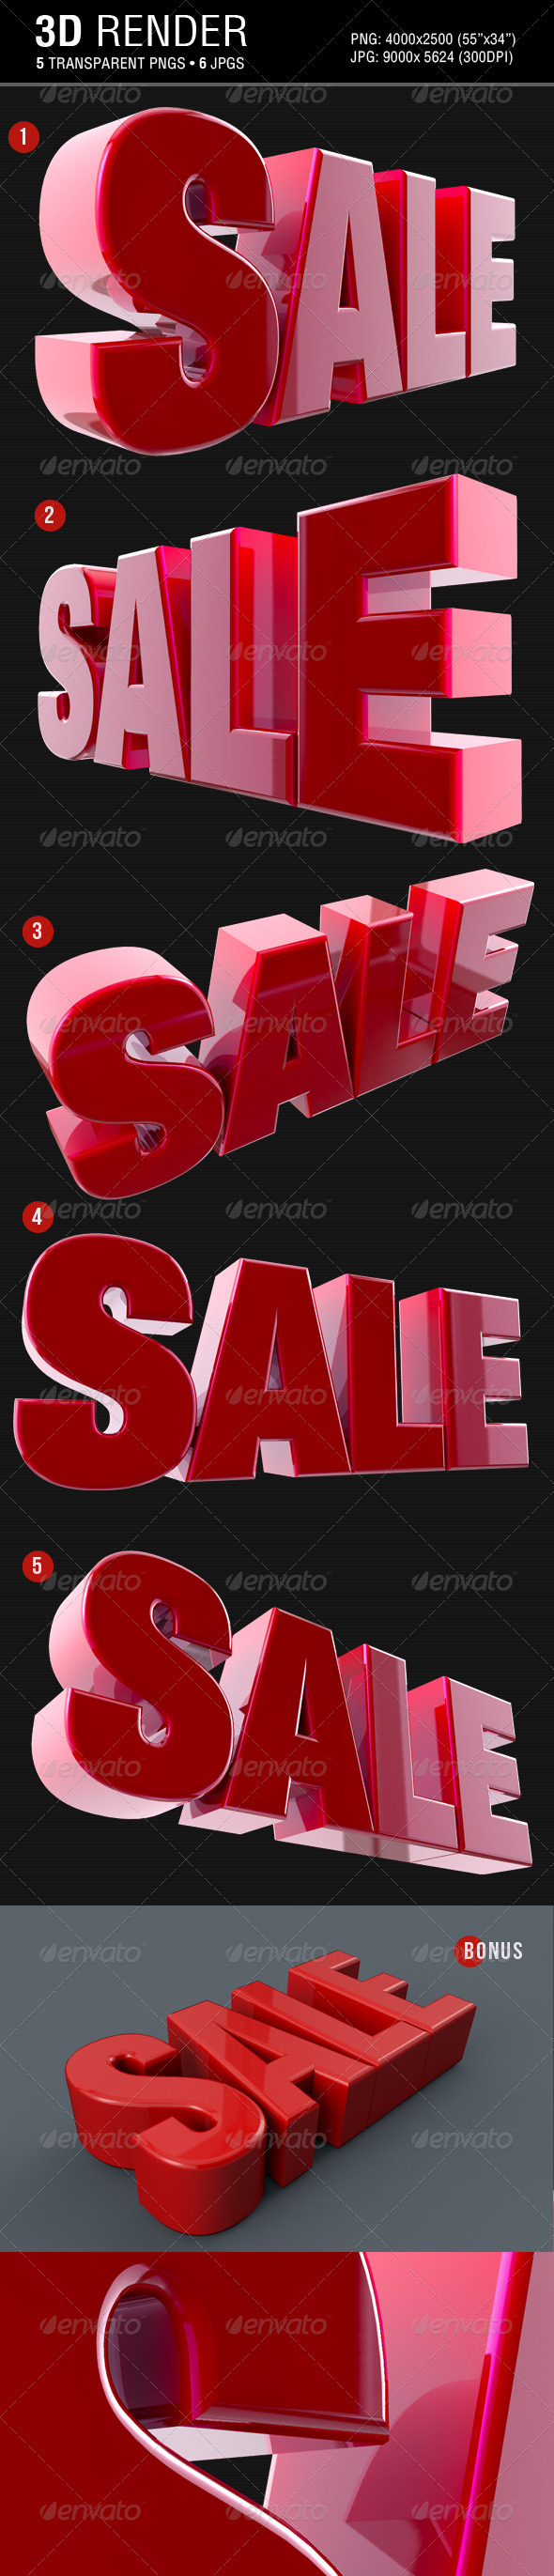 Sale 3D Text Render - Text 3D Renders